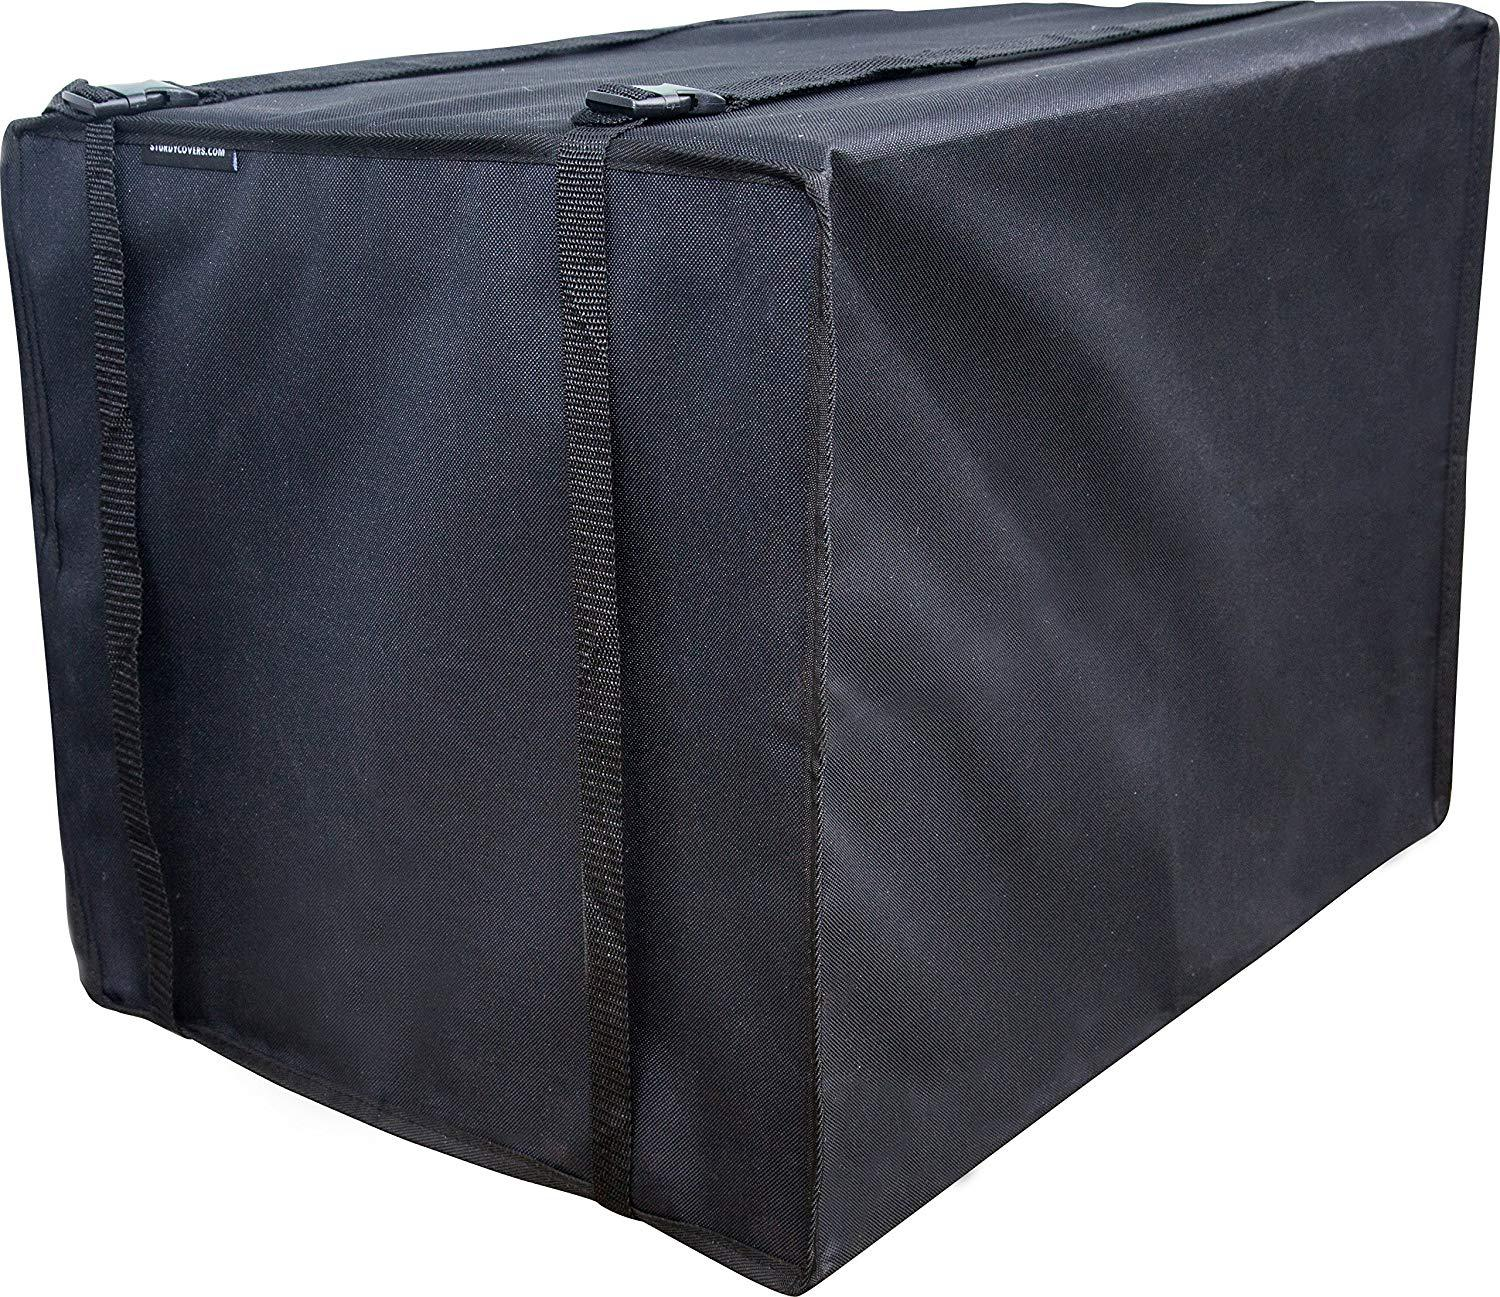 Outdoor Furniture Cover Outdoor Air Conditioning Outside The Rain Cover Waterproof Sunscreen Air Conditioning Dust Cover Rain Covers     - title=